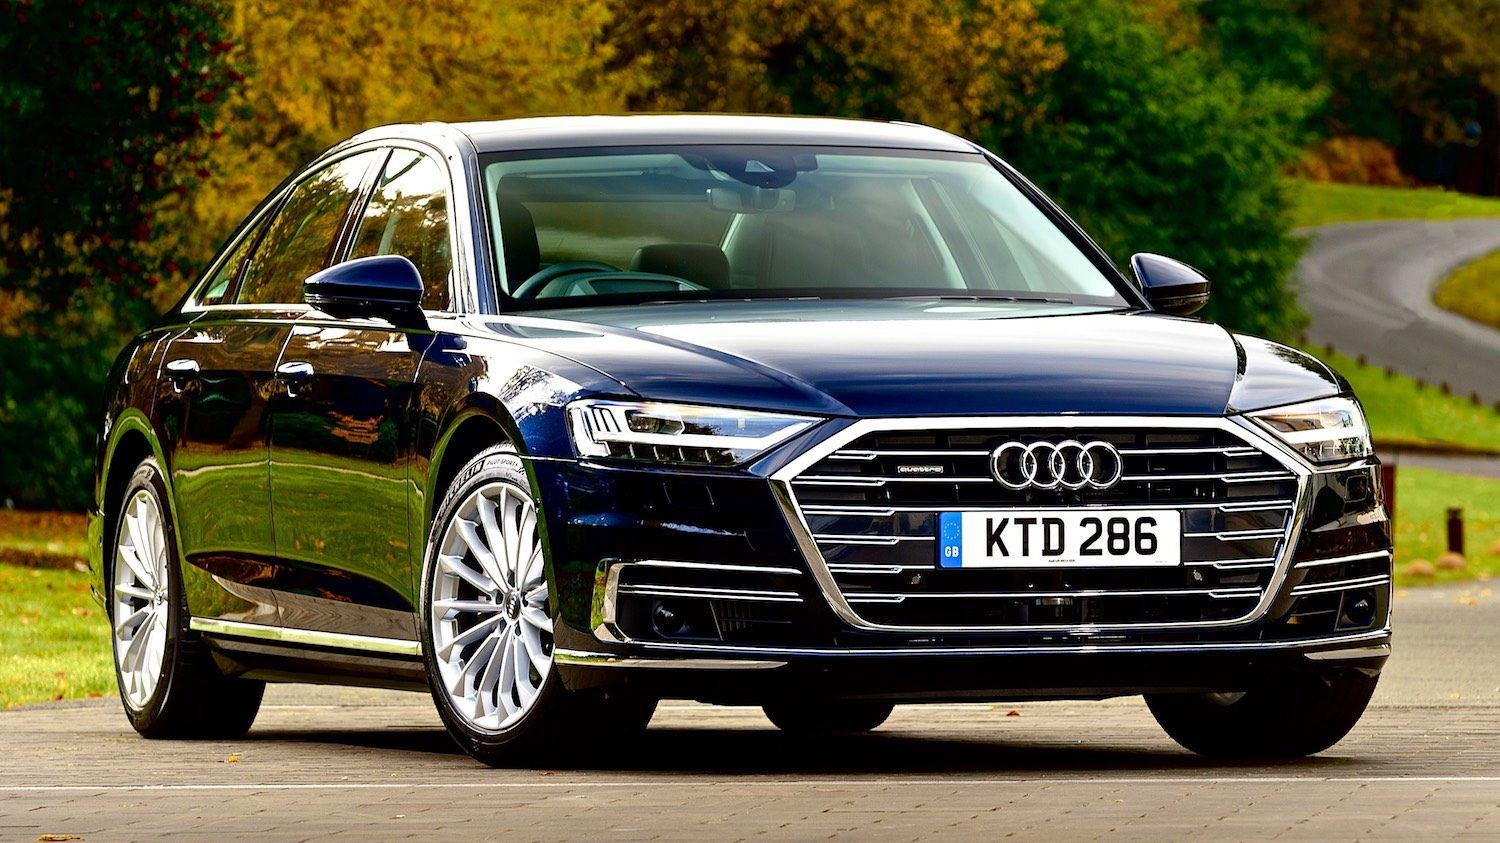 Reviewed The 2018 Audi A8 50 Tdi Quattro Premium Luxury That S Class Exclaimed The Man At The Motorway Services My Wife And I Had Audi A8 Audi Tdi Audi